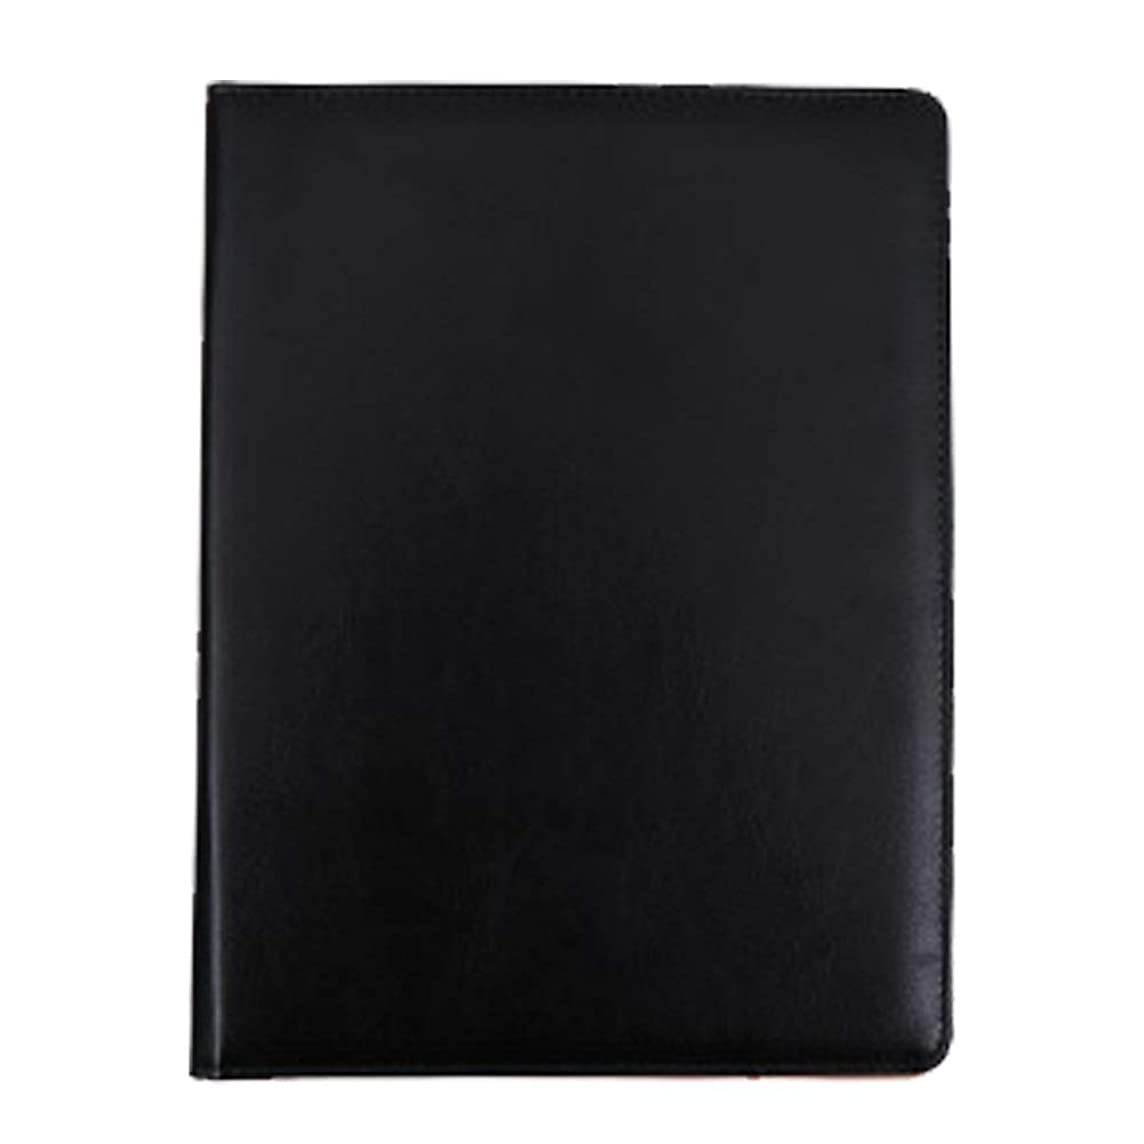 Notebook Leather Resume Storage Clipboard Folder Portfolio, Clipboard A4 Folder Conference for Legal Pad for Business School Office Conference Office